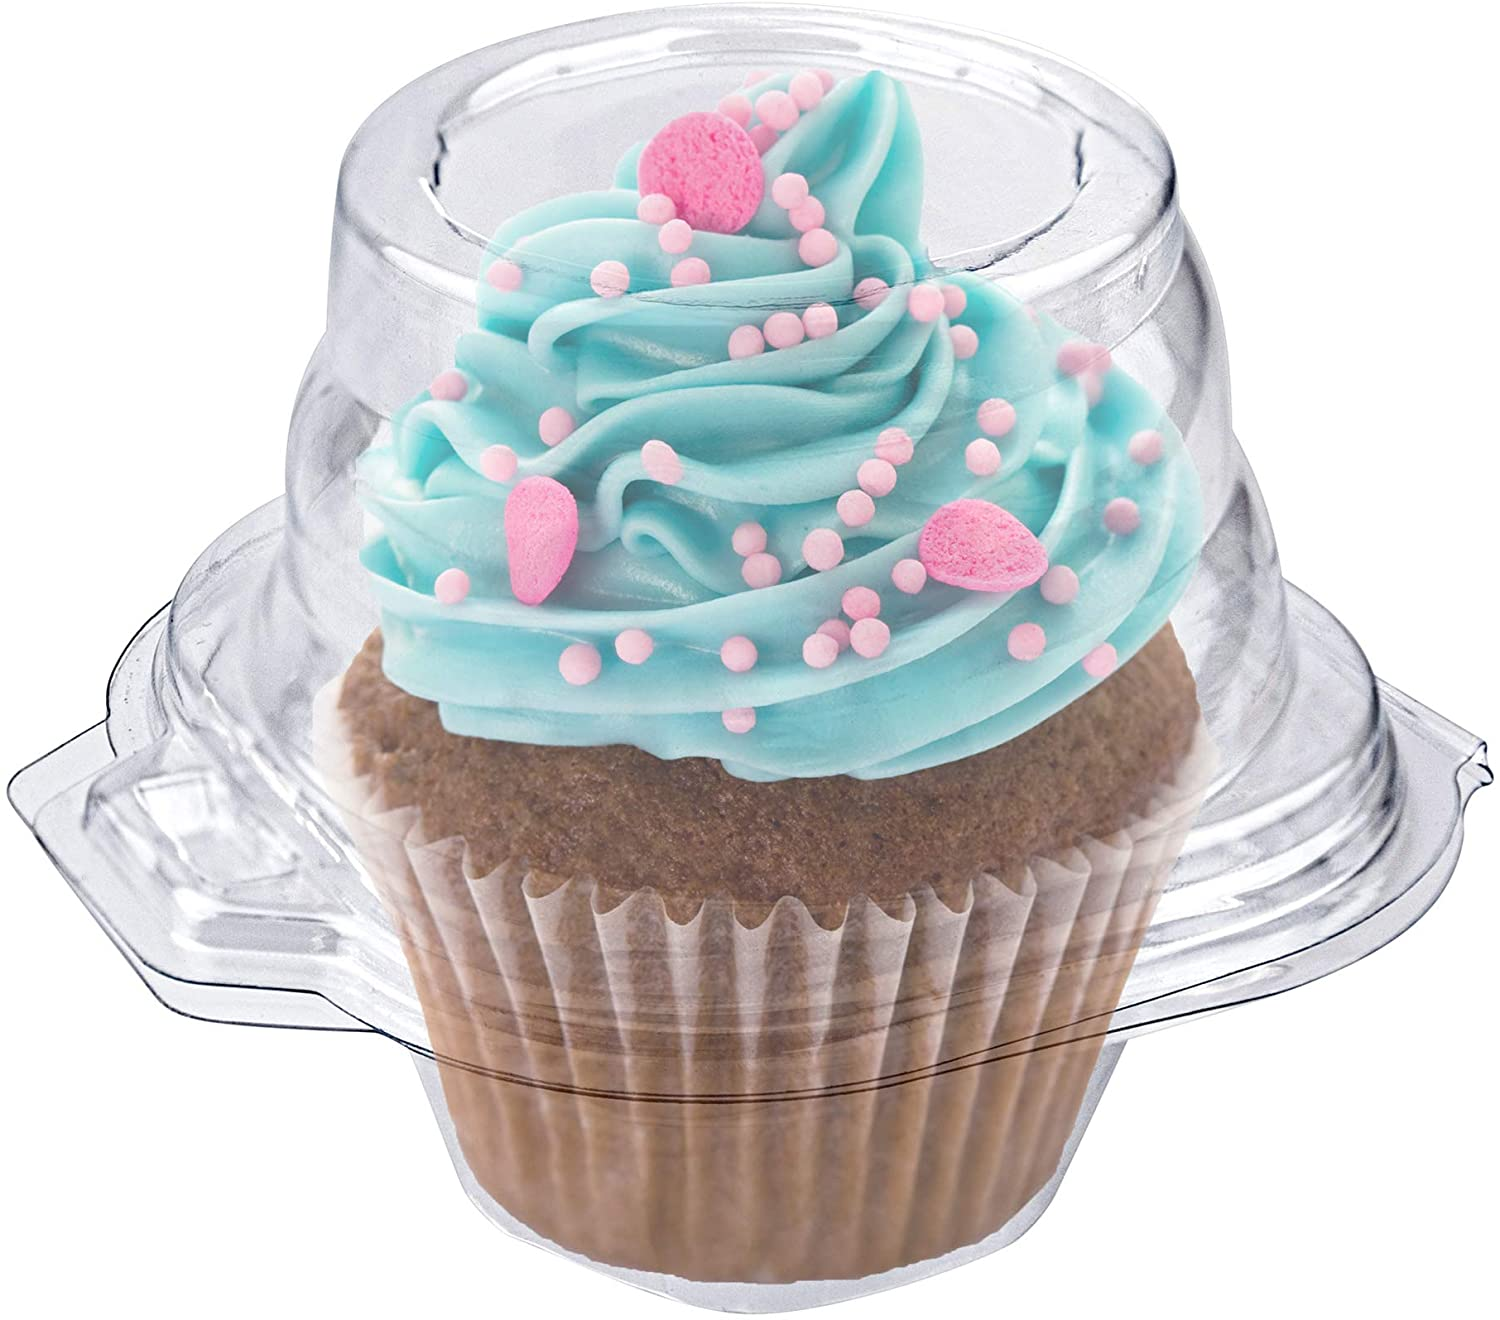 Stock Your Home Individual Plastic Cupcake Containers Disposable with Connected Airtight Dome Lid (50 Count) Clear Single Cupcake Container, BPA Free